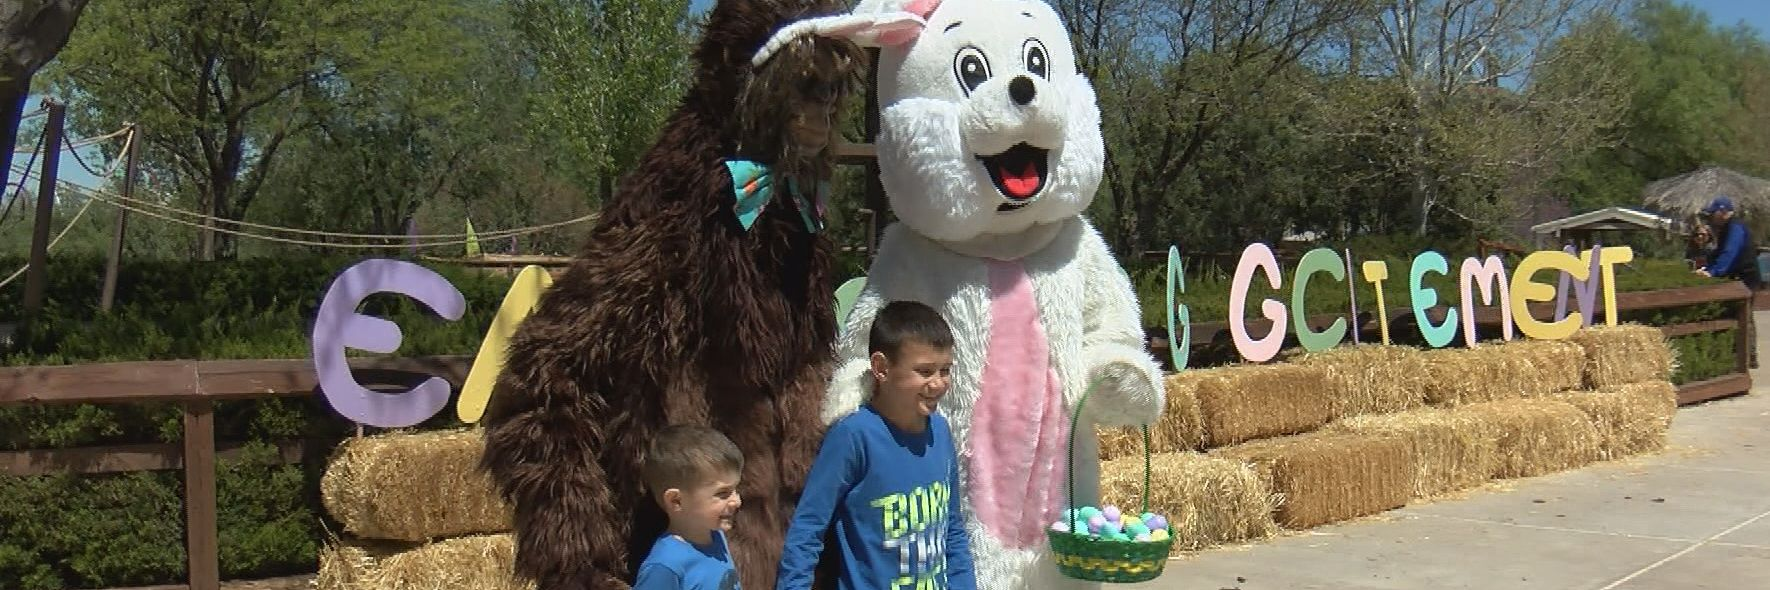 Egg-citing Easter activities in Amarillo